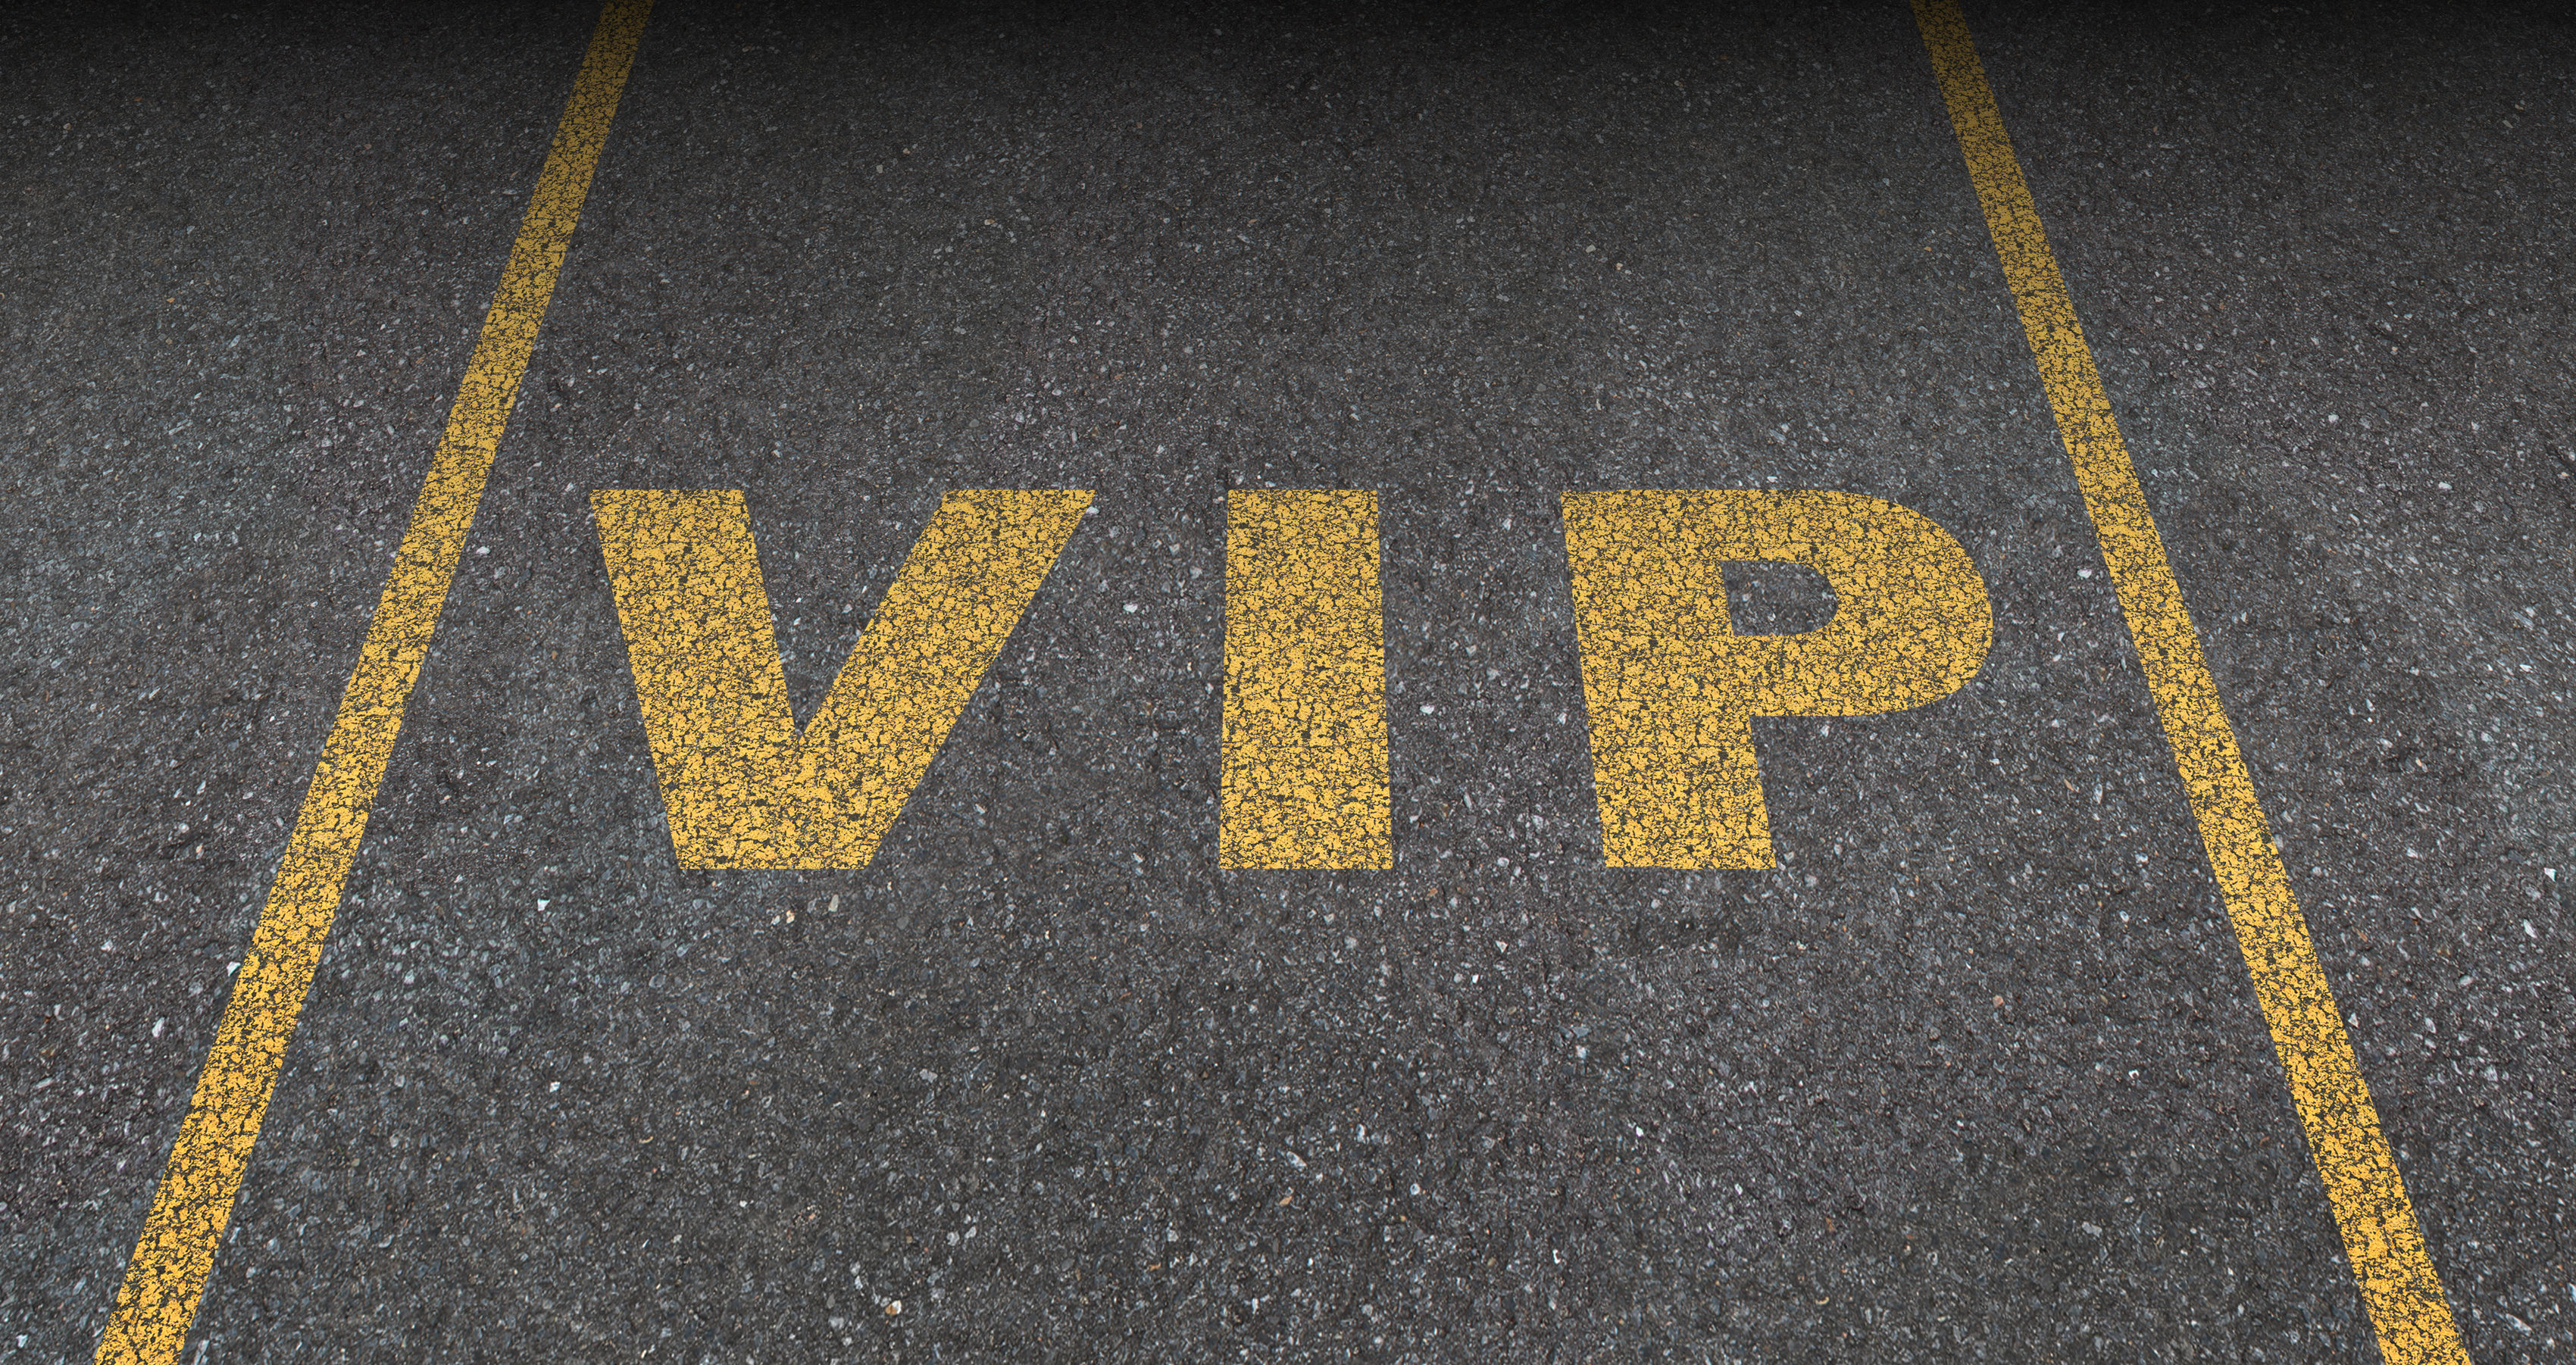 VIP service symbol with a first class reserved parking space for with a sign painted on asphalt as a symbol of exclusive hospitality with the royal treatment with a blank area for text.